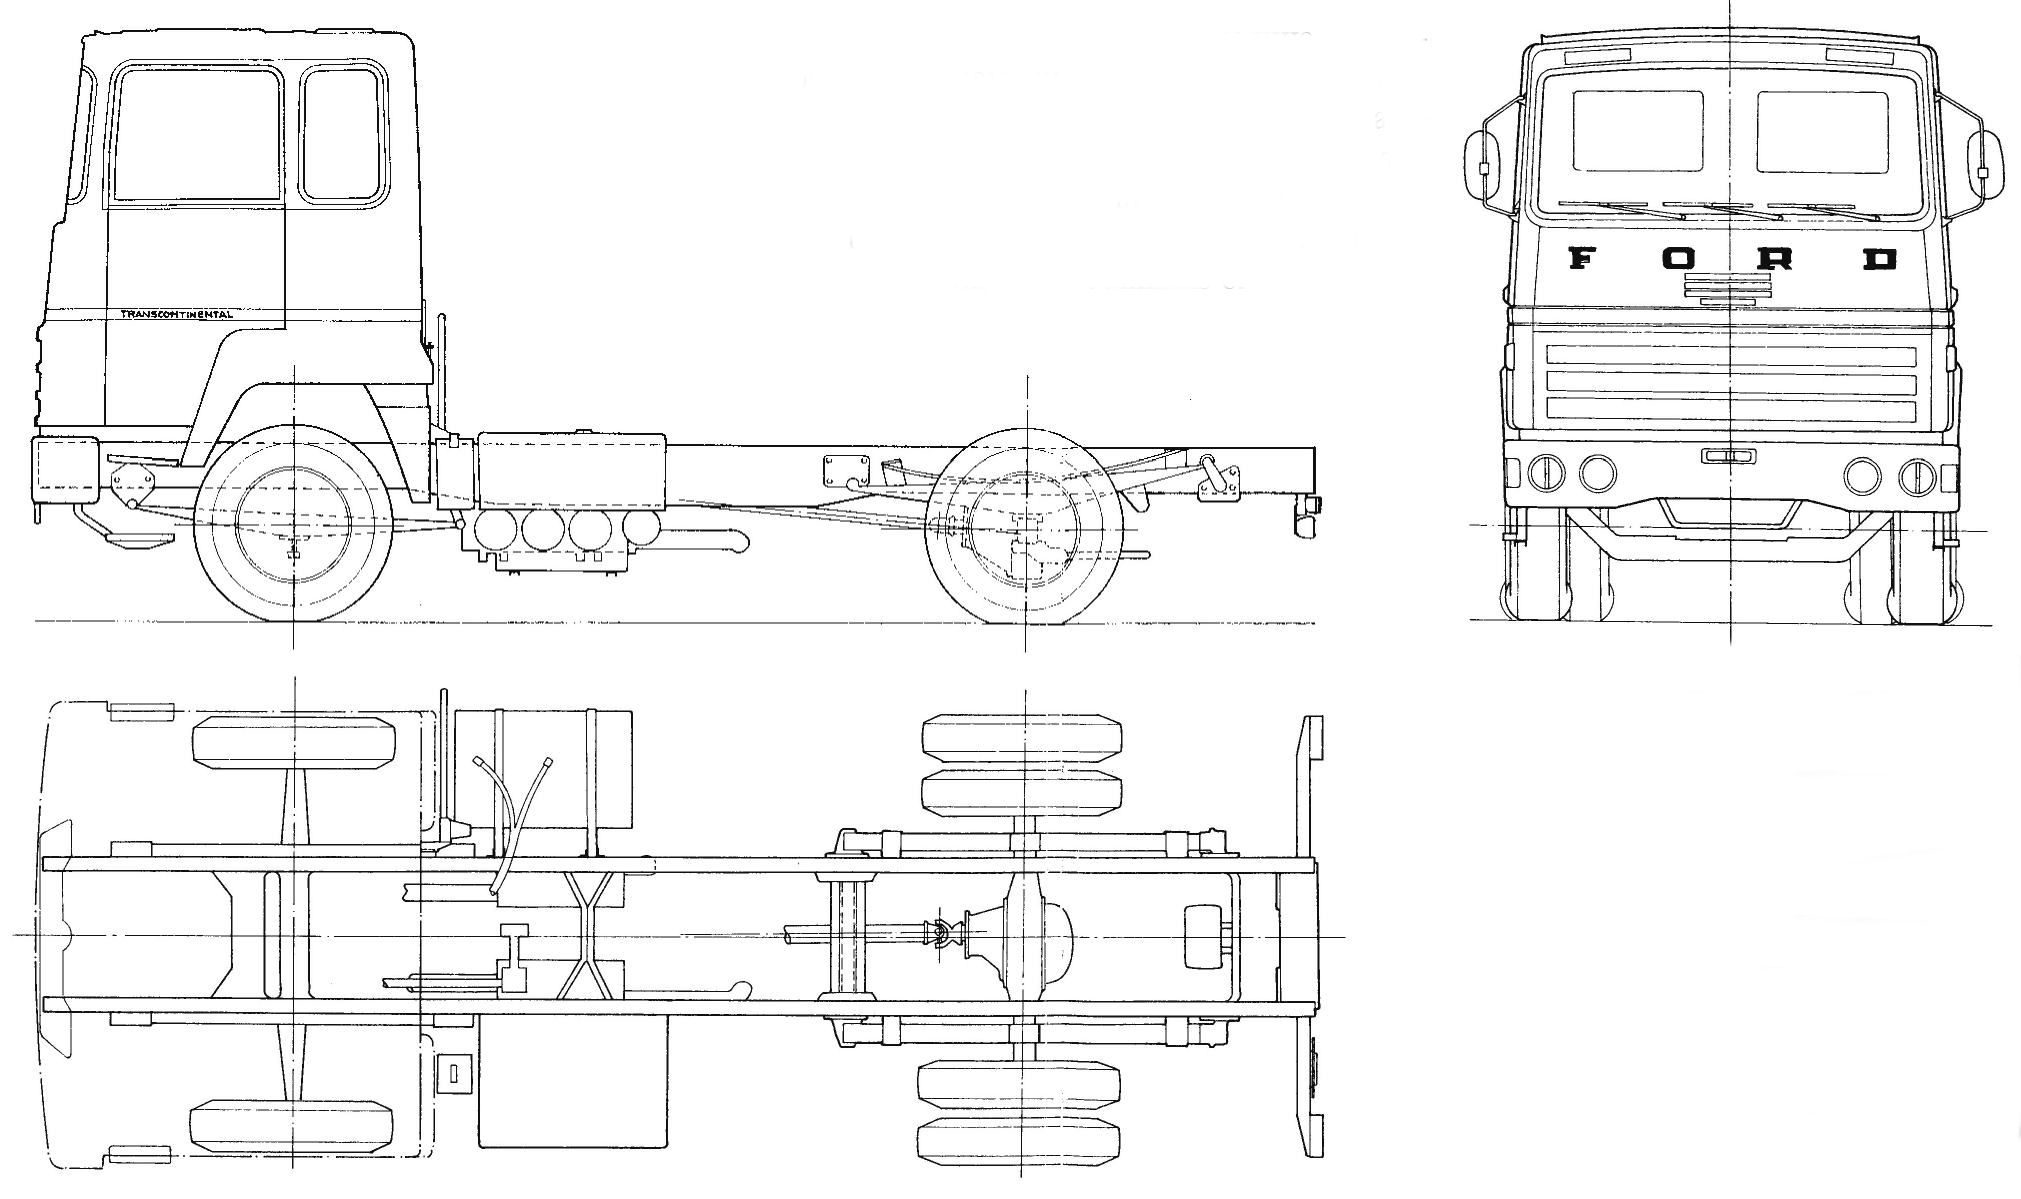 Ford Transcontinental blueprint